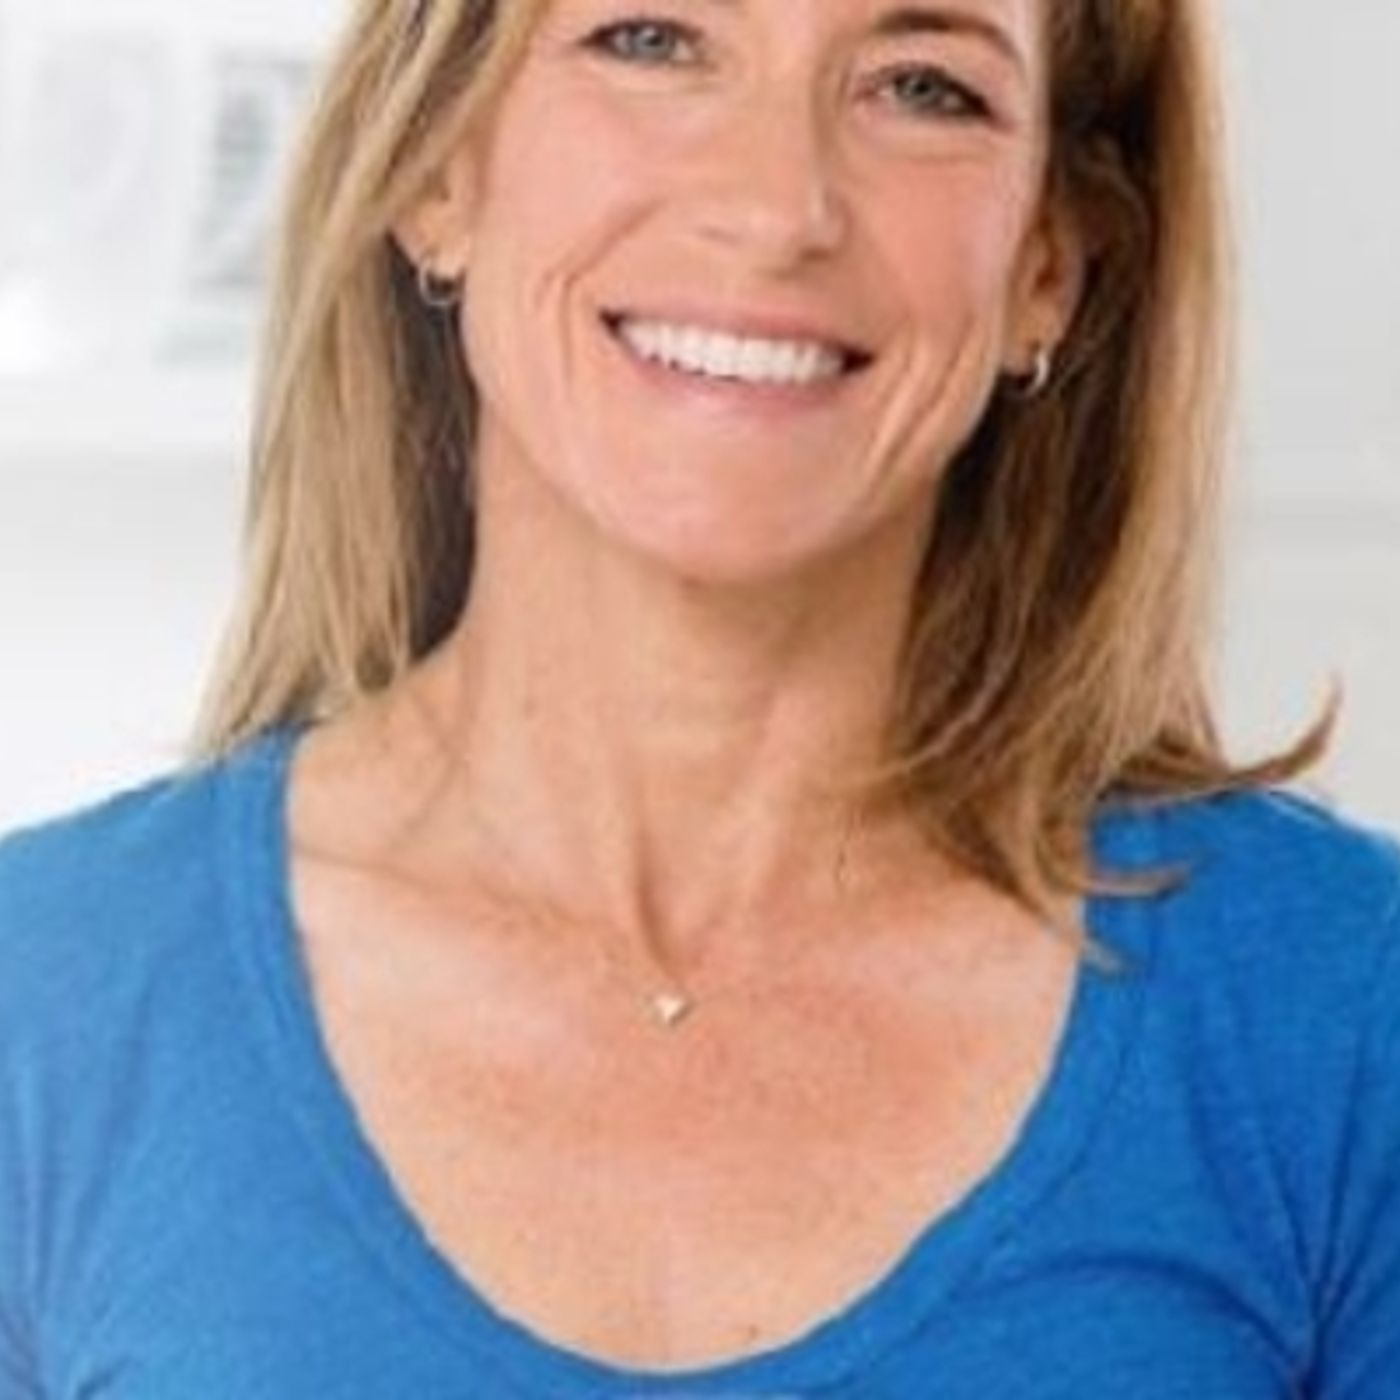 Ep. 4: Karen Malkin discusses Inflammation, Stress, Sleep, Toxins and much more